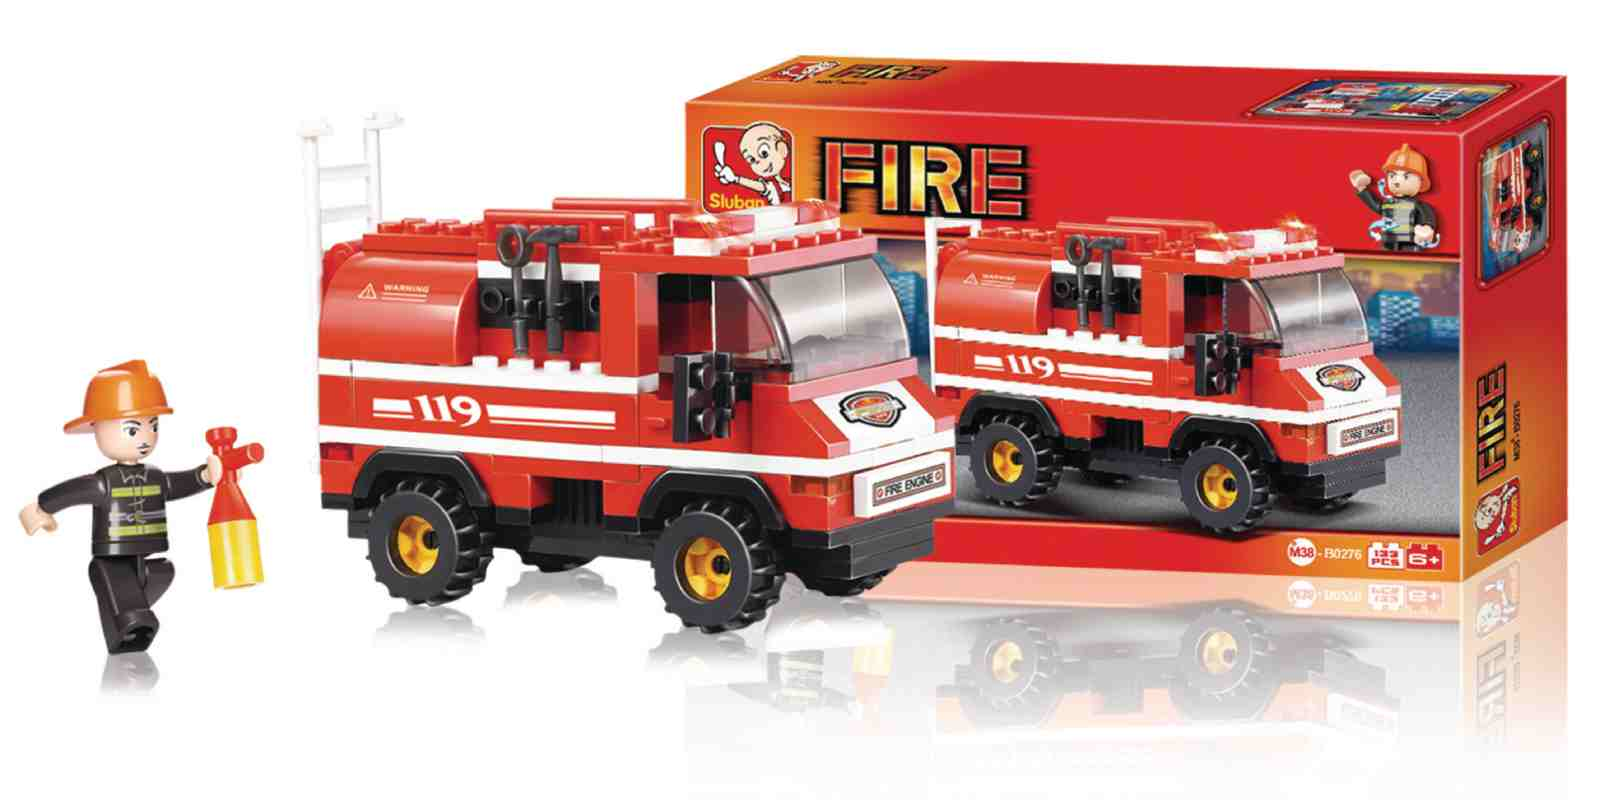 Sluban M38-B0276 - Fire Series - Fire Truck